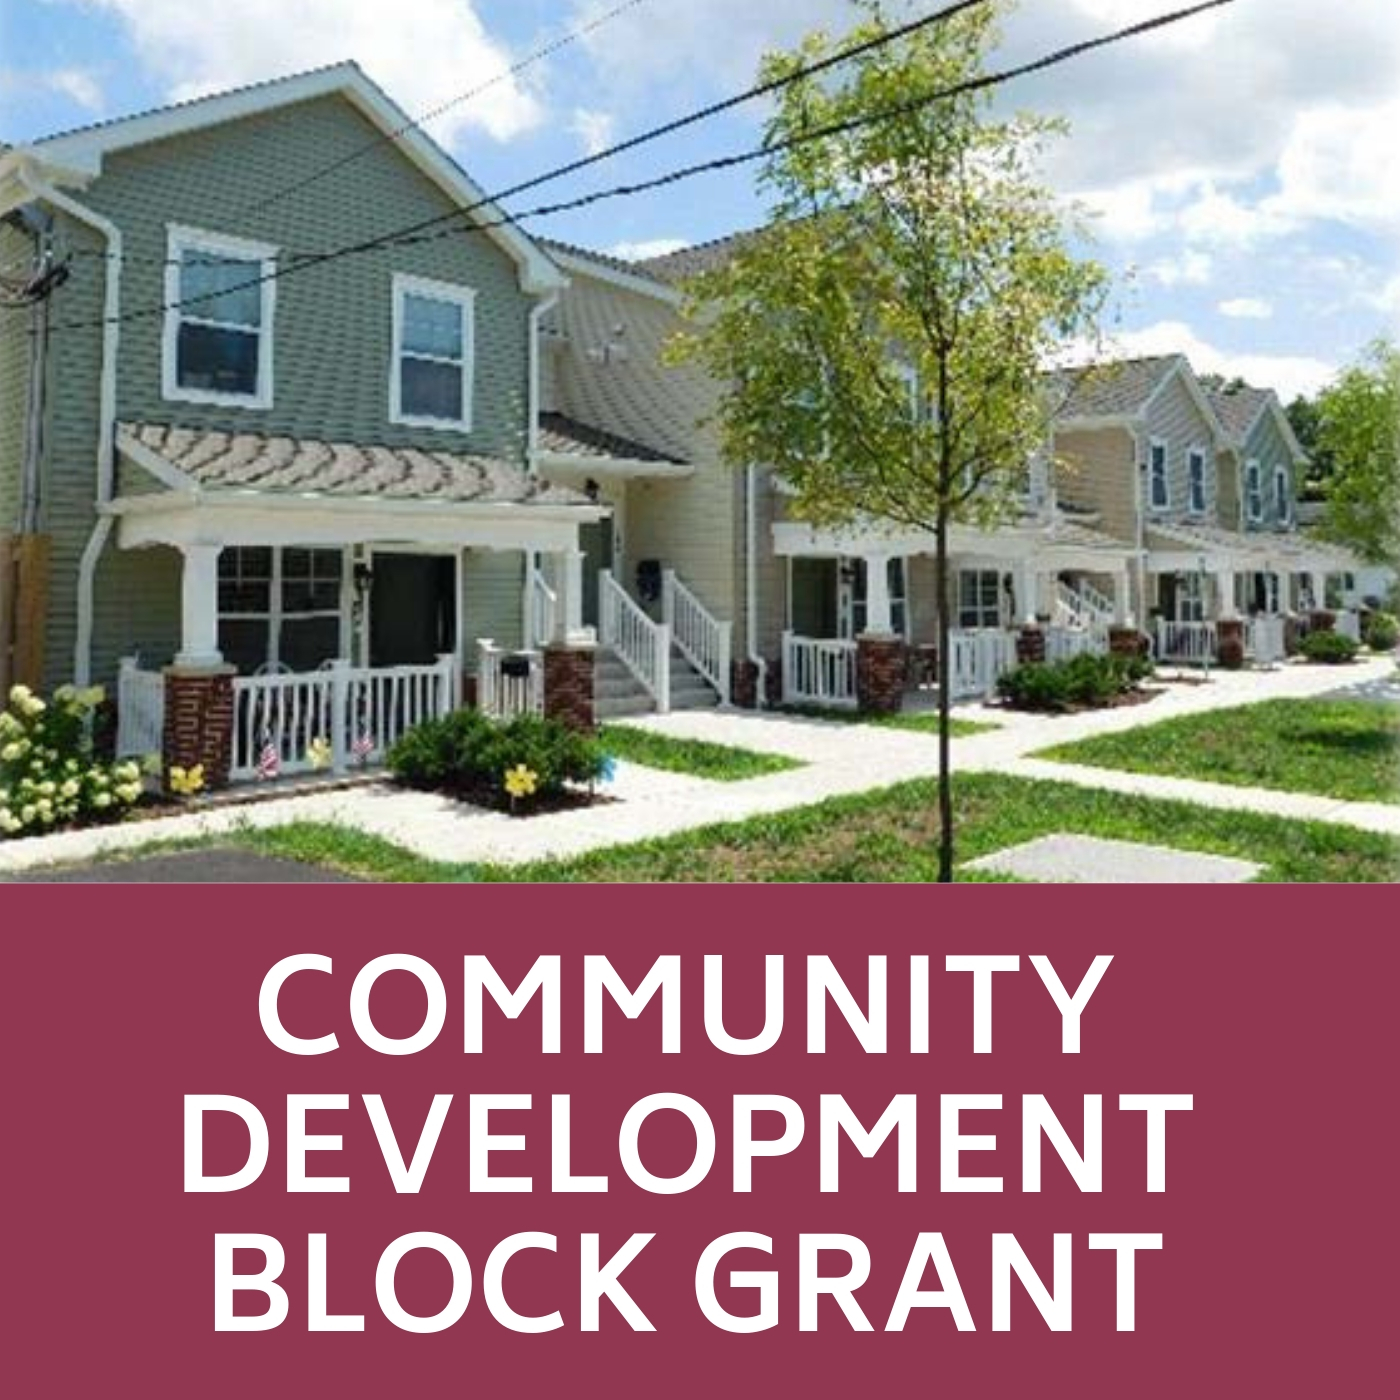 Community Development Block Grant Icon of houses that links to the Community Development Block Grant web-page.